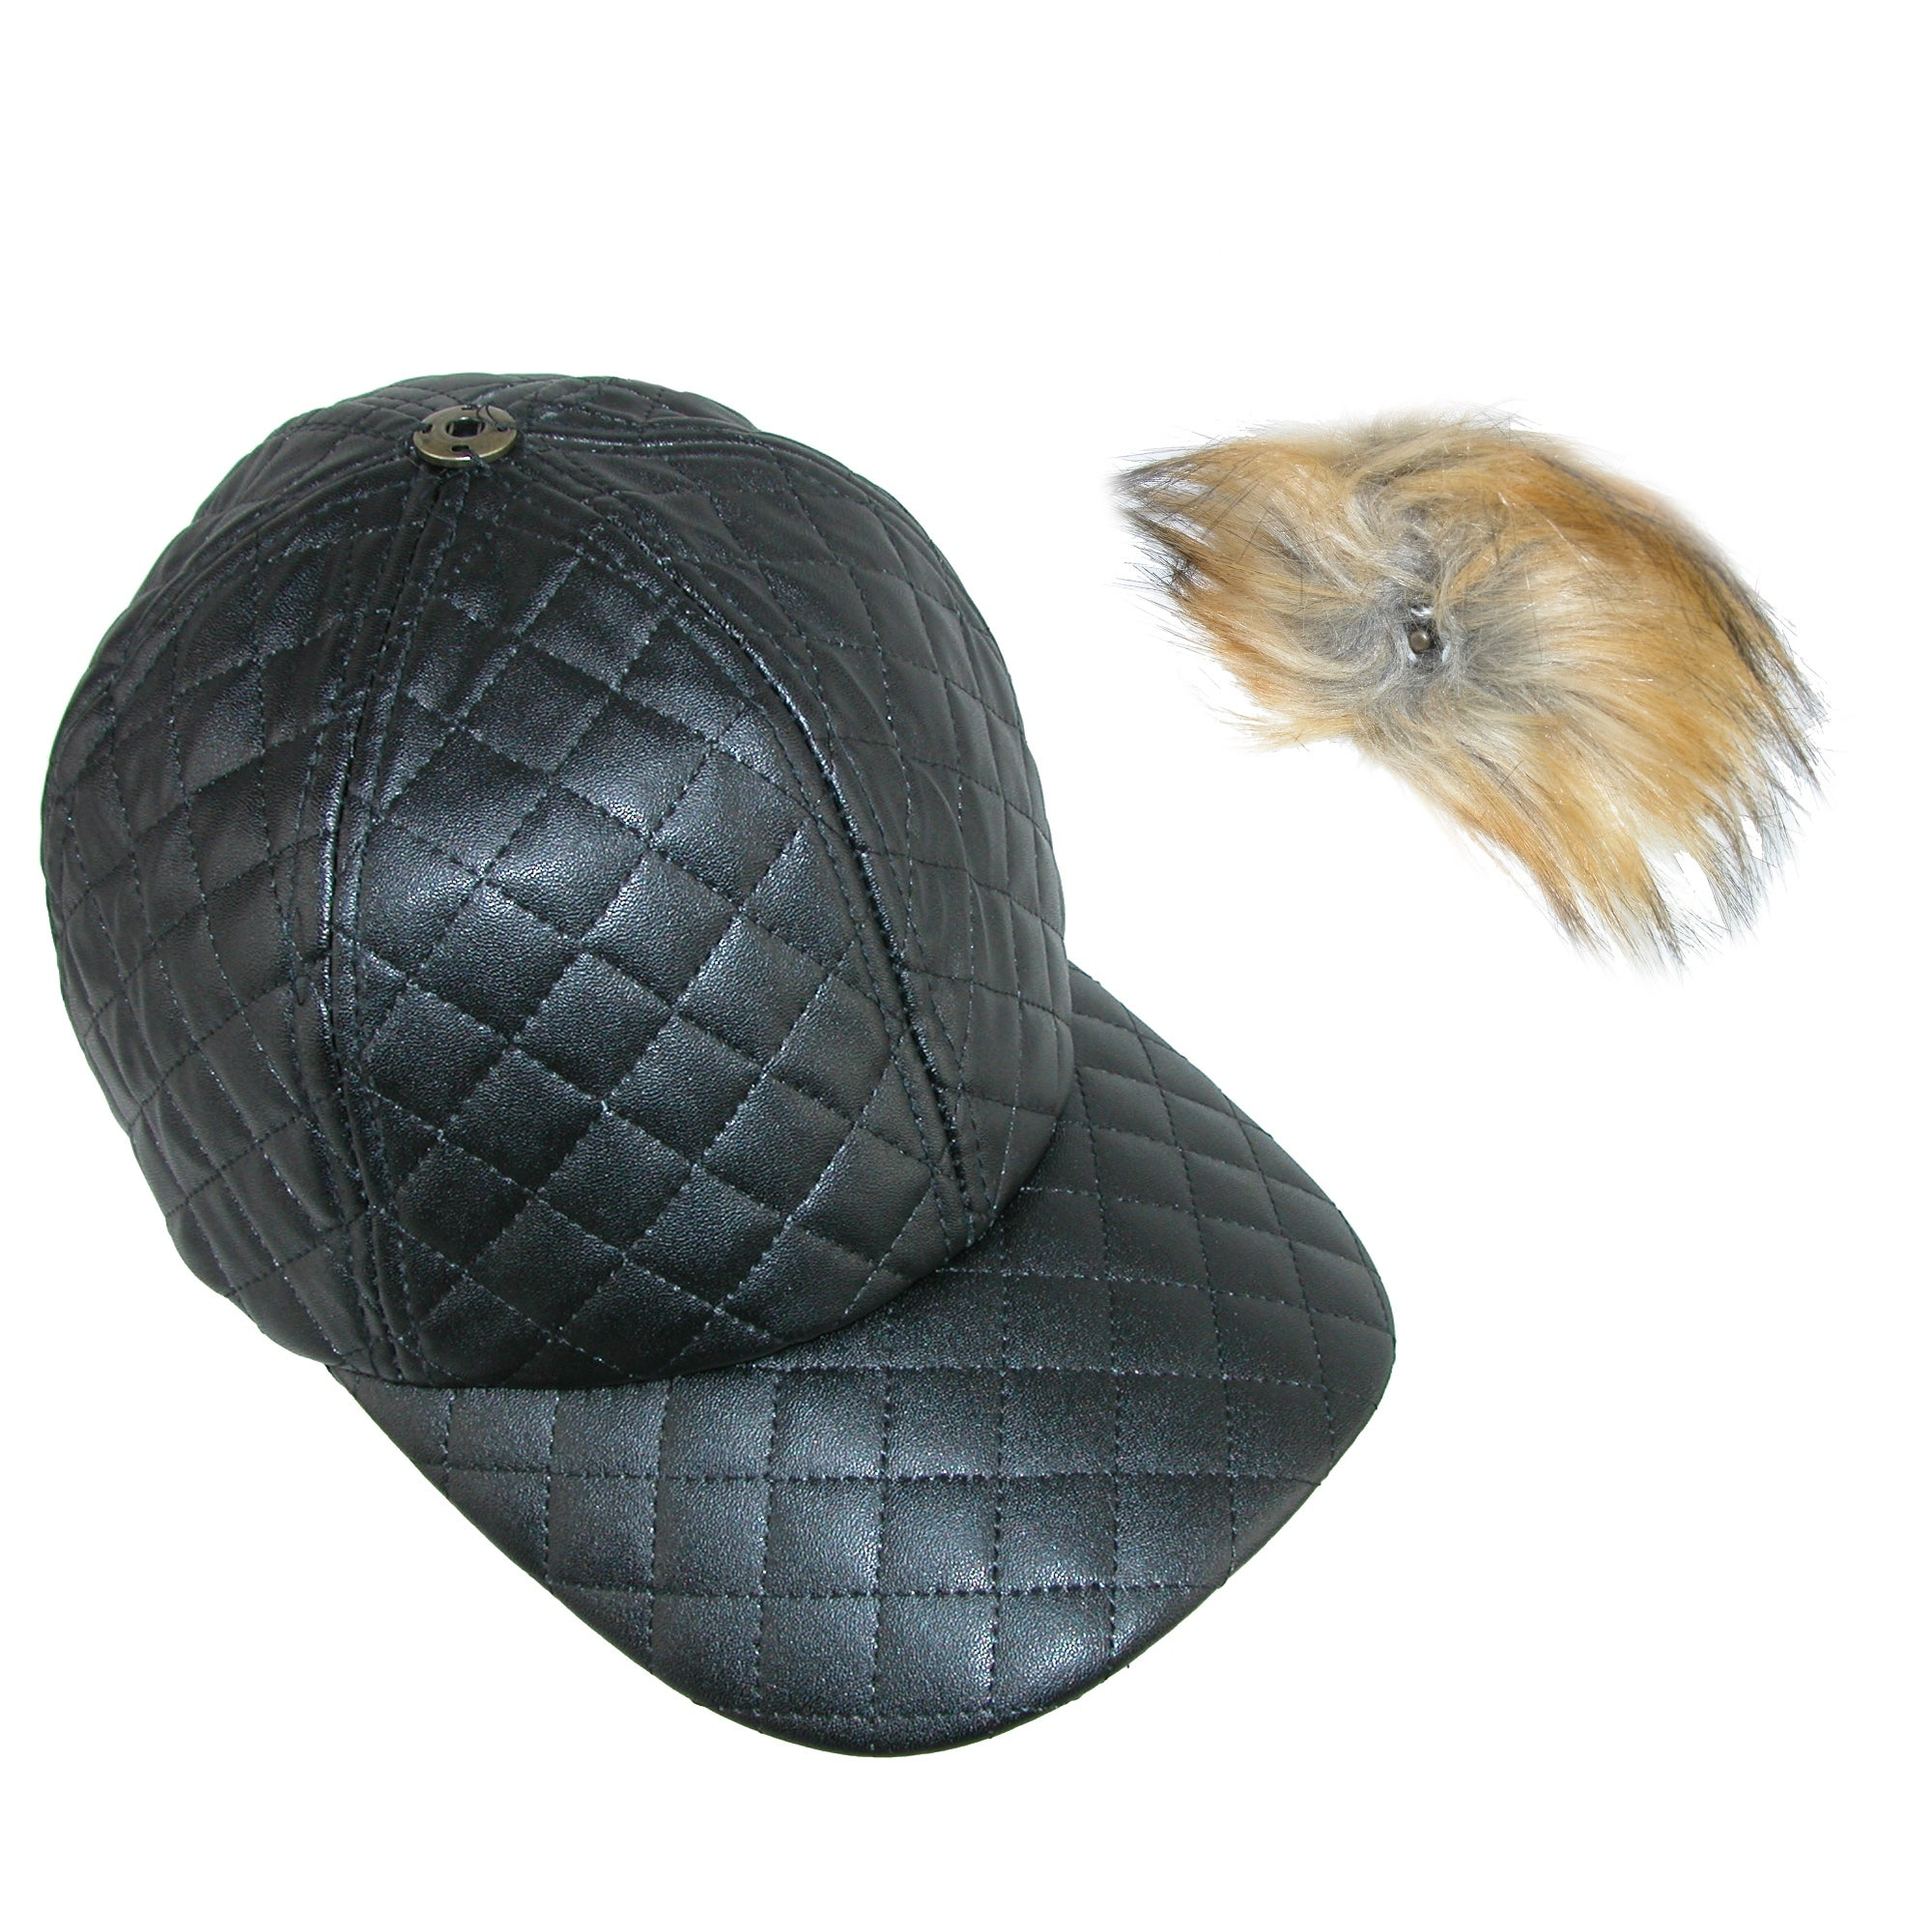 d9745cdb31d Shop Pia Rossini Women s Quilted PU Cap with Faux Fur Detachable Pom Pom -  Free Shipping On Orders Over  45 - Overstock - 18059761